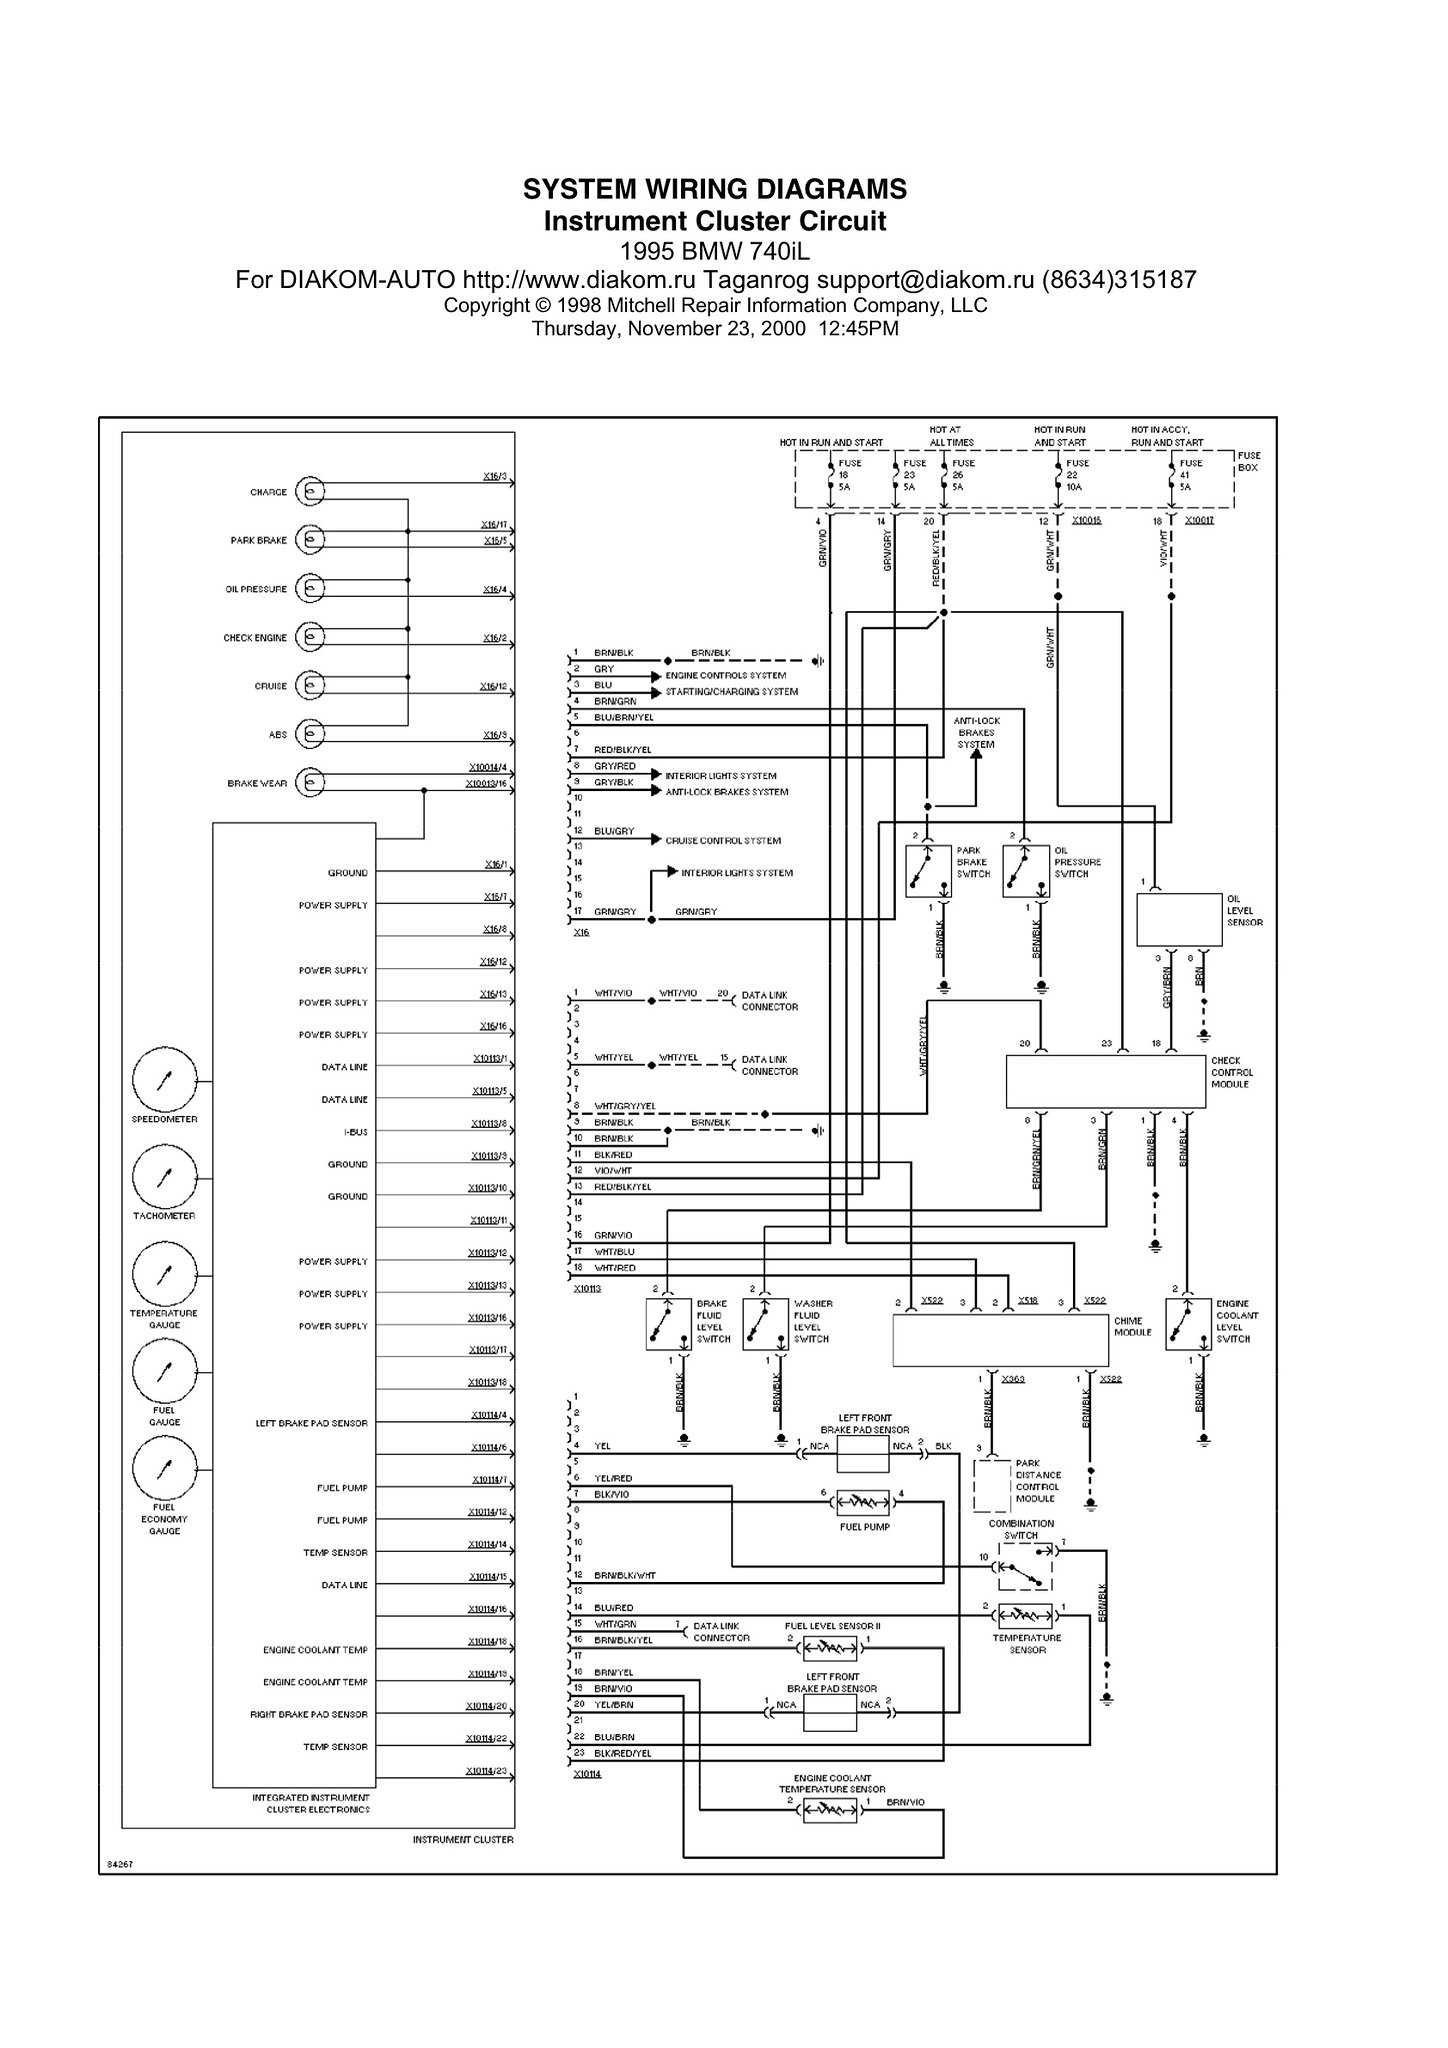 bmw e39 wiring diagram free download how to power on e39 cluster out of car? bmw e39 wiring diagrams